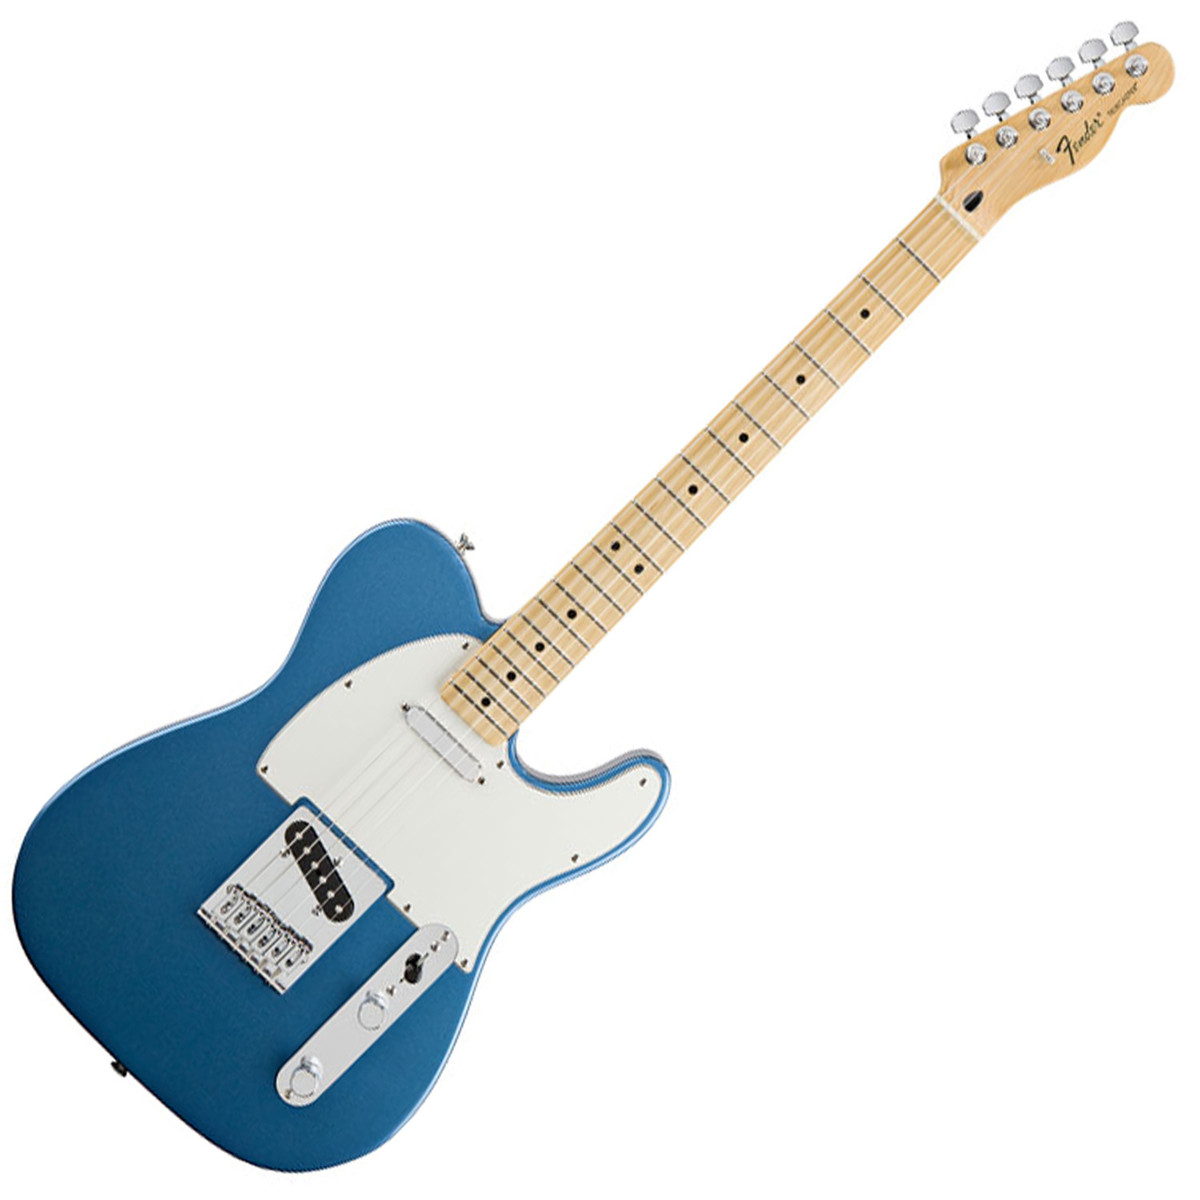 fender standard telecaster mn lake placid blue b stock at. Black Bedroom Furniture Sets. Home Design Ideas